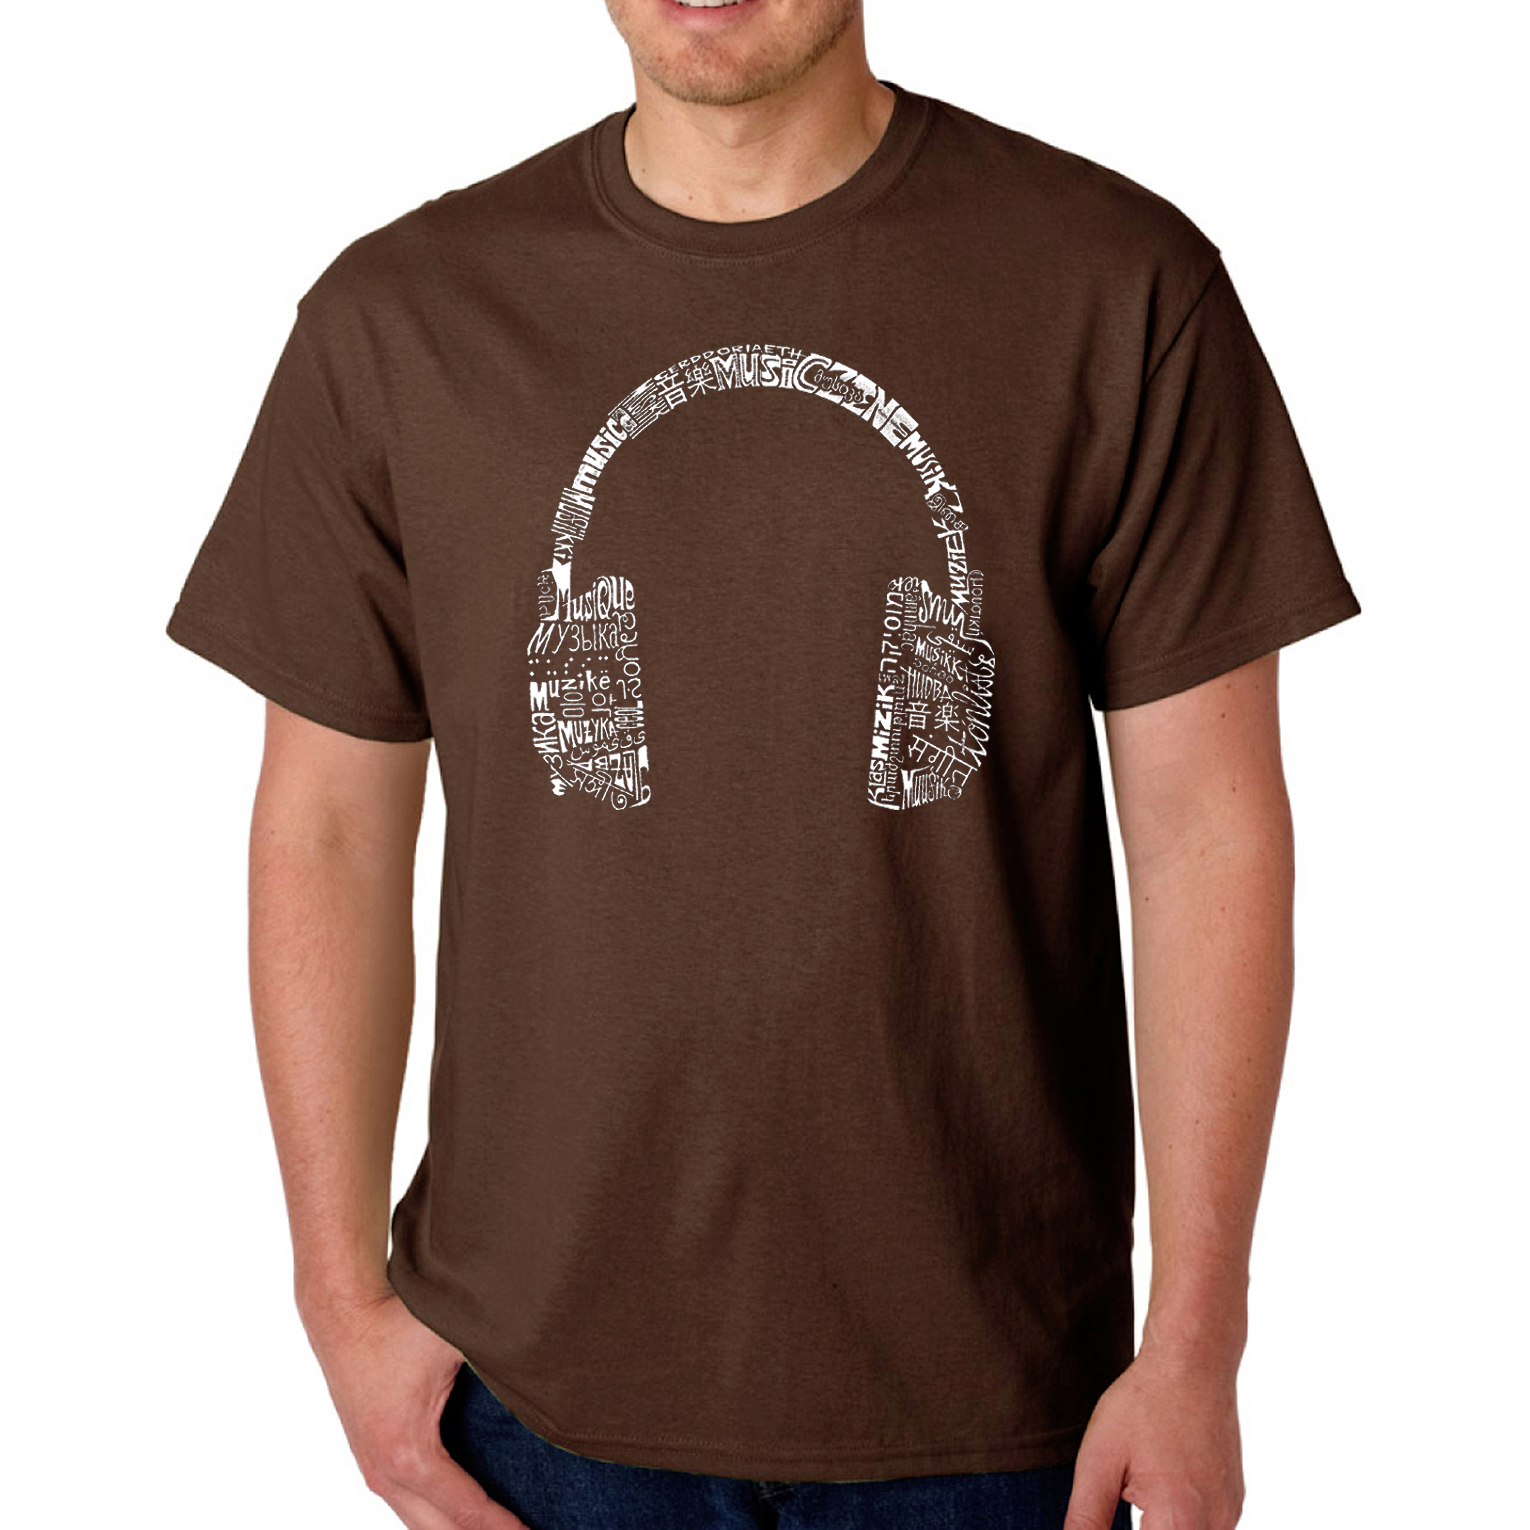 Los Angeles Pop Art Men's T-shirt - Headphones - Languages